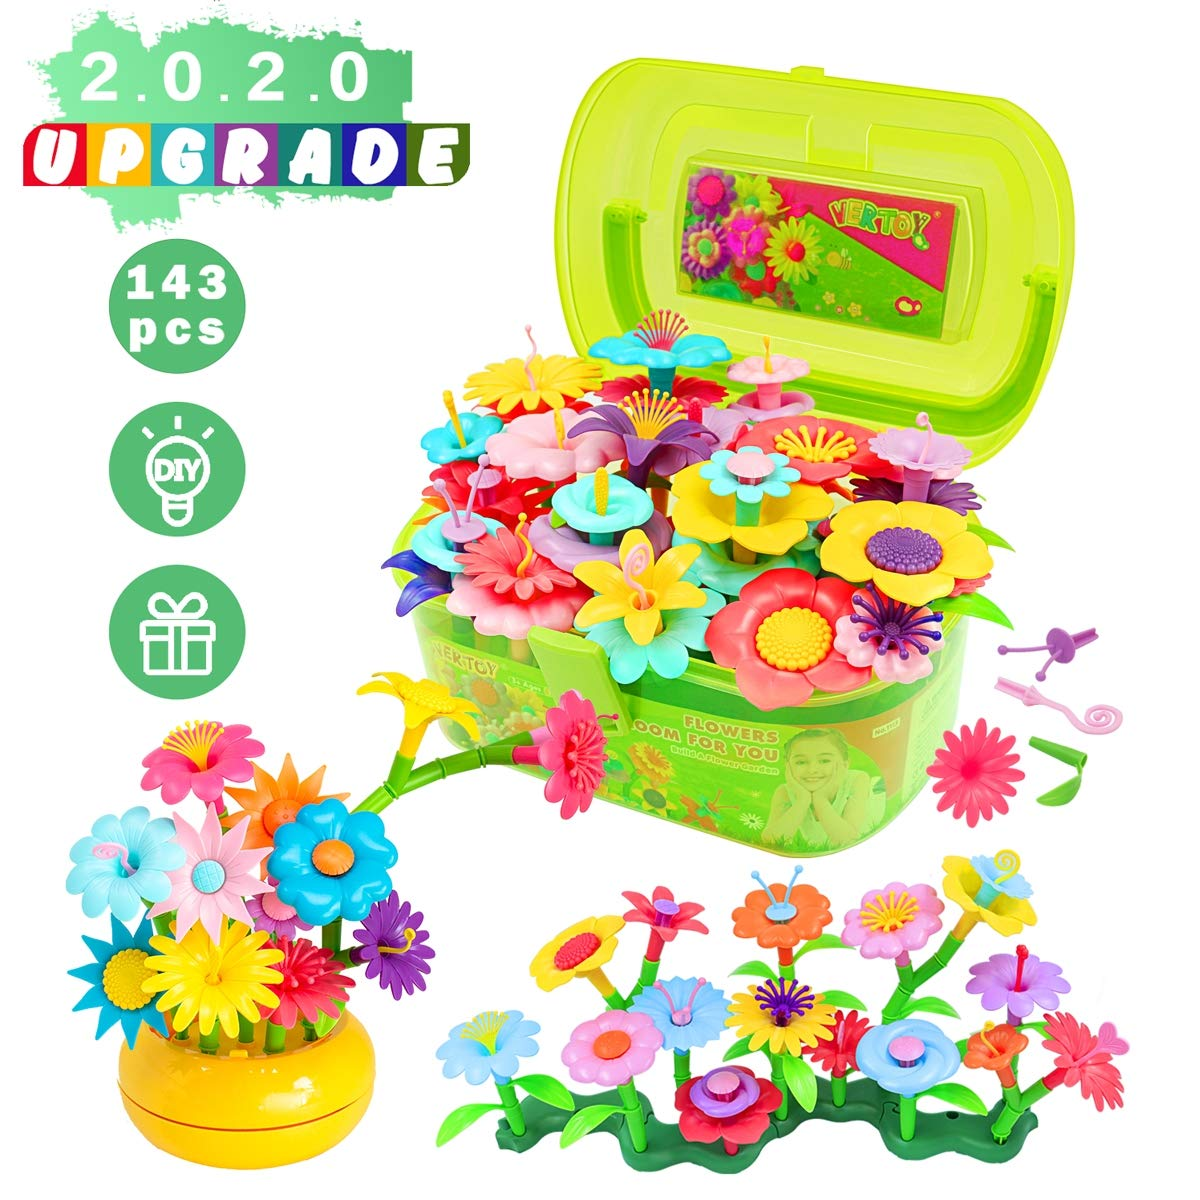 VERTOY Flower Garden Building Toy Set for 3, 4, 5, 6 Year Old Girls, Preschool Activities, STEM Educational Toys and Great Gift for Age 3+ yr Toddlers and Kids, 143 pcs